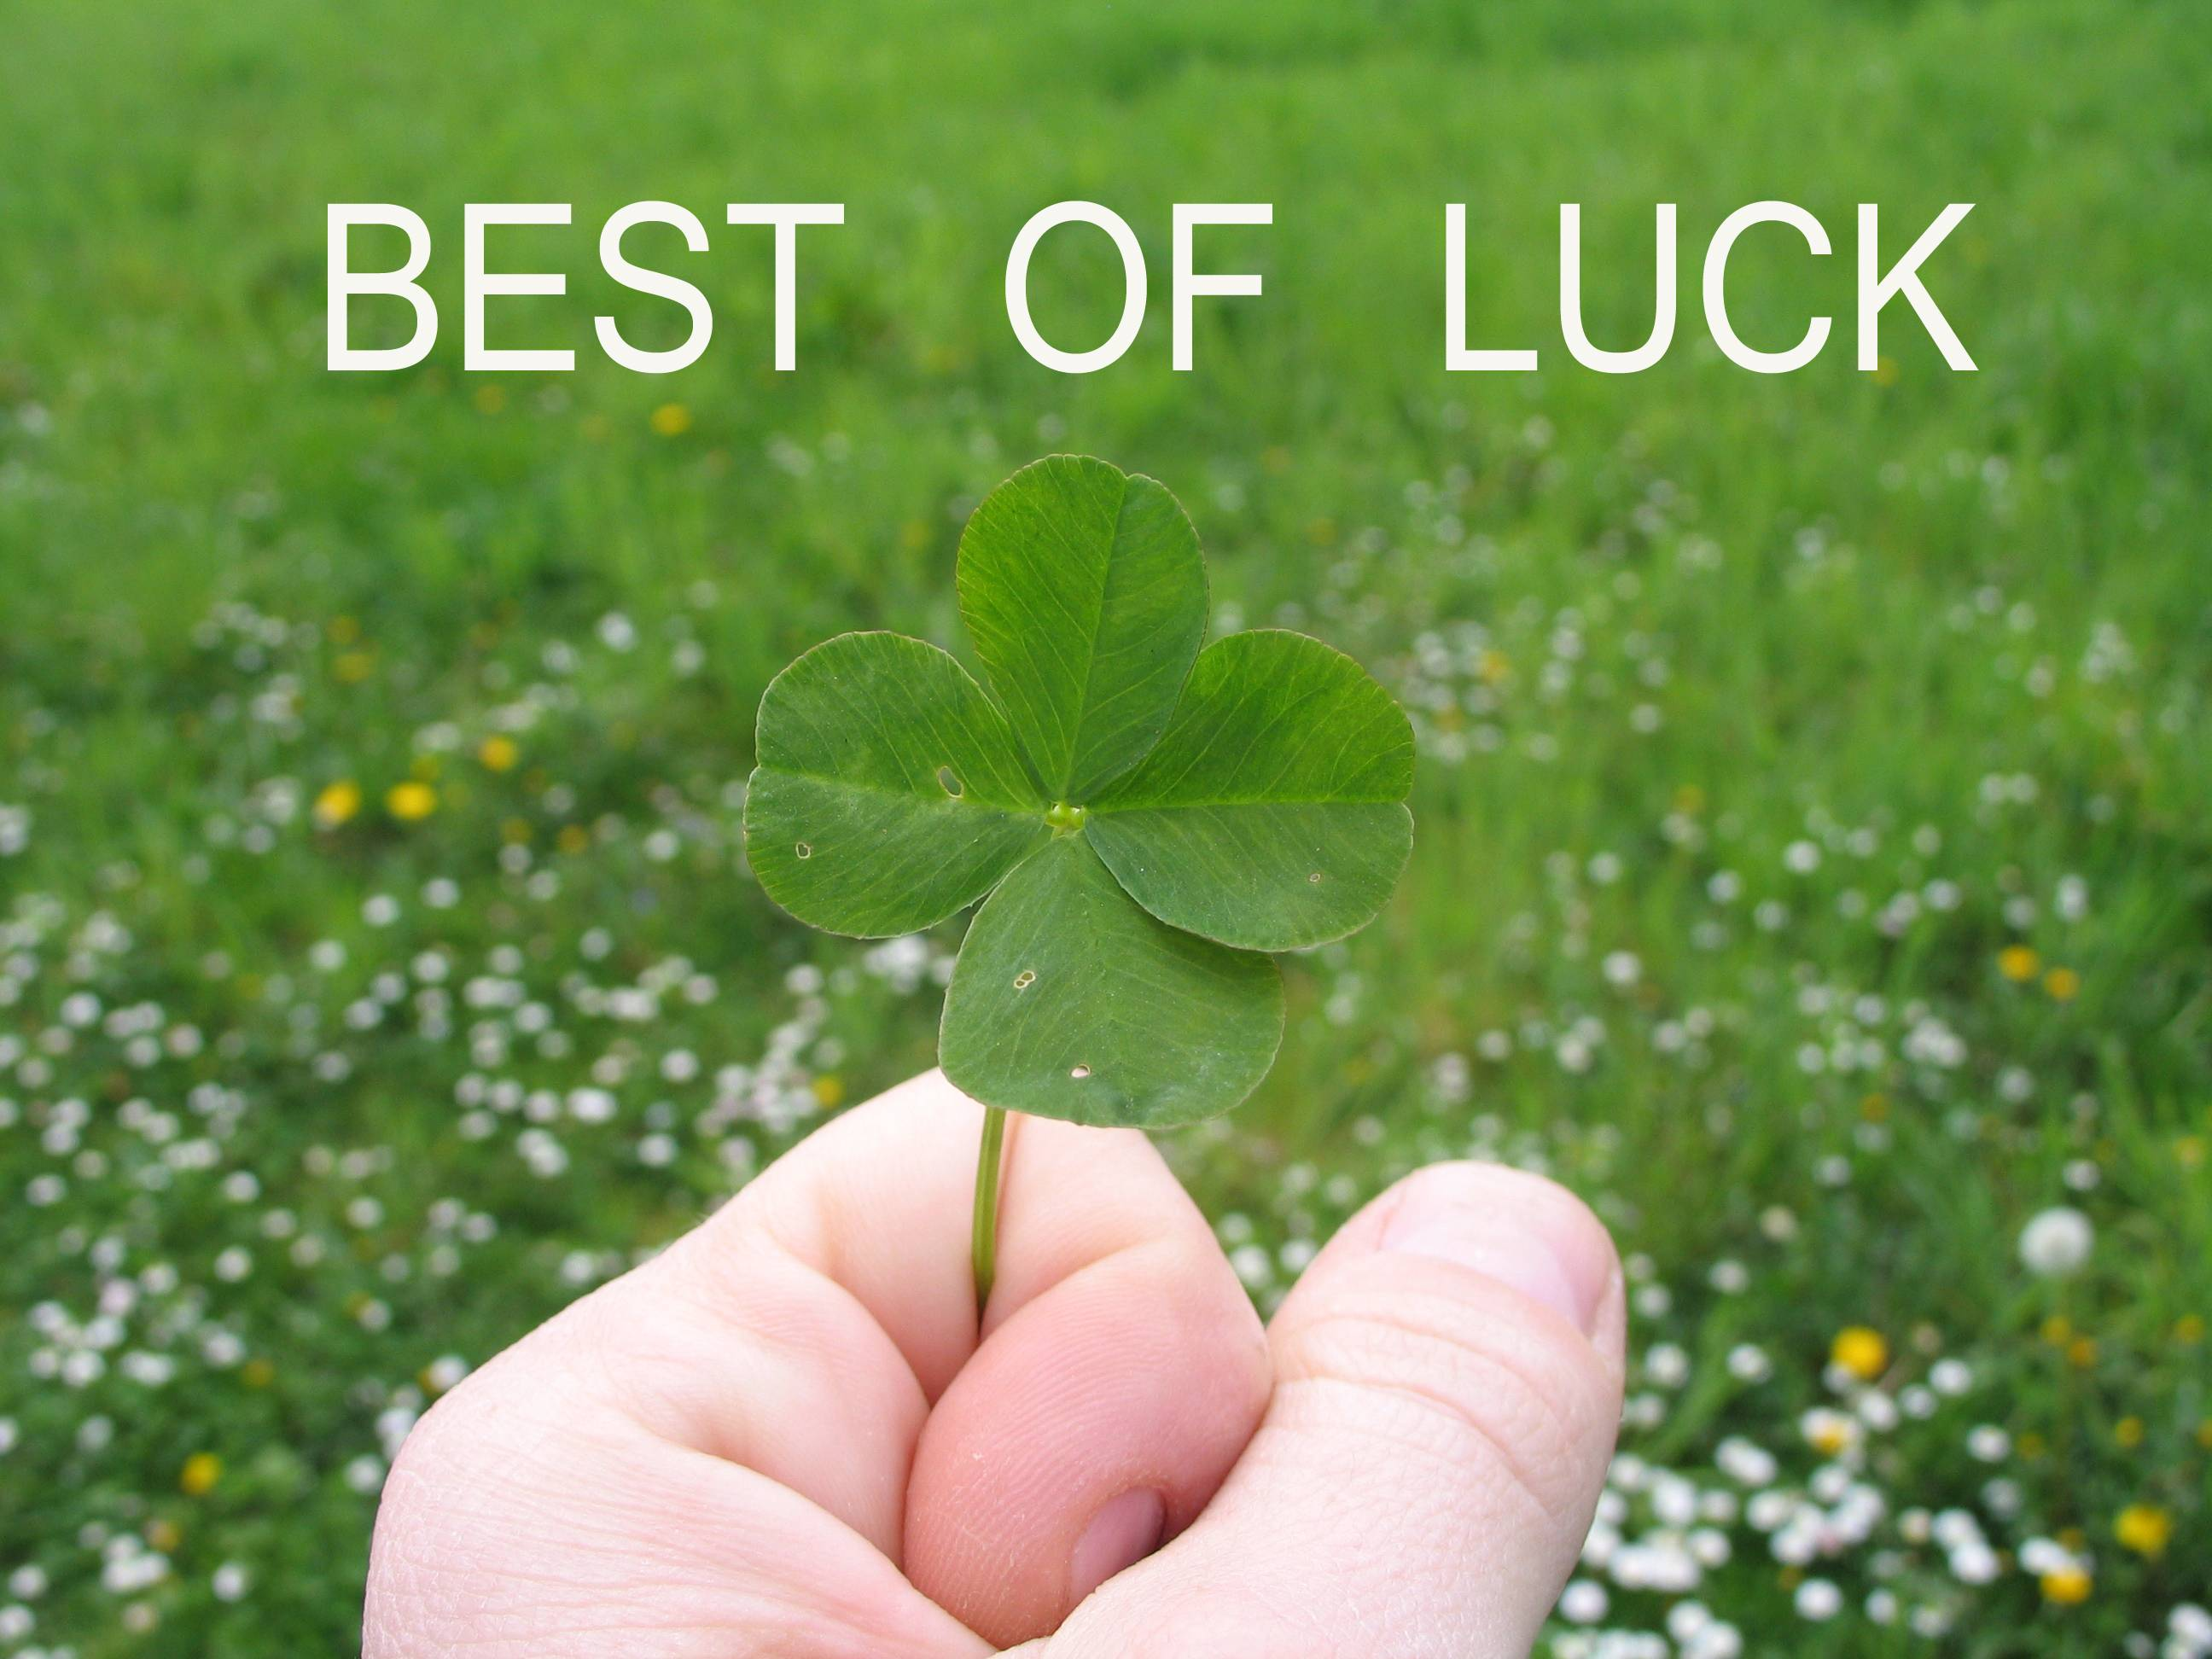 Best Of Luck Wallpaper